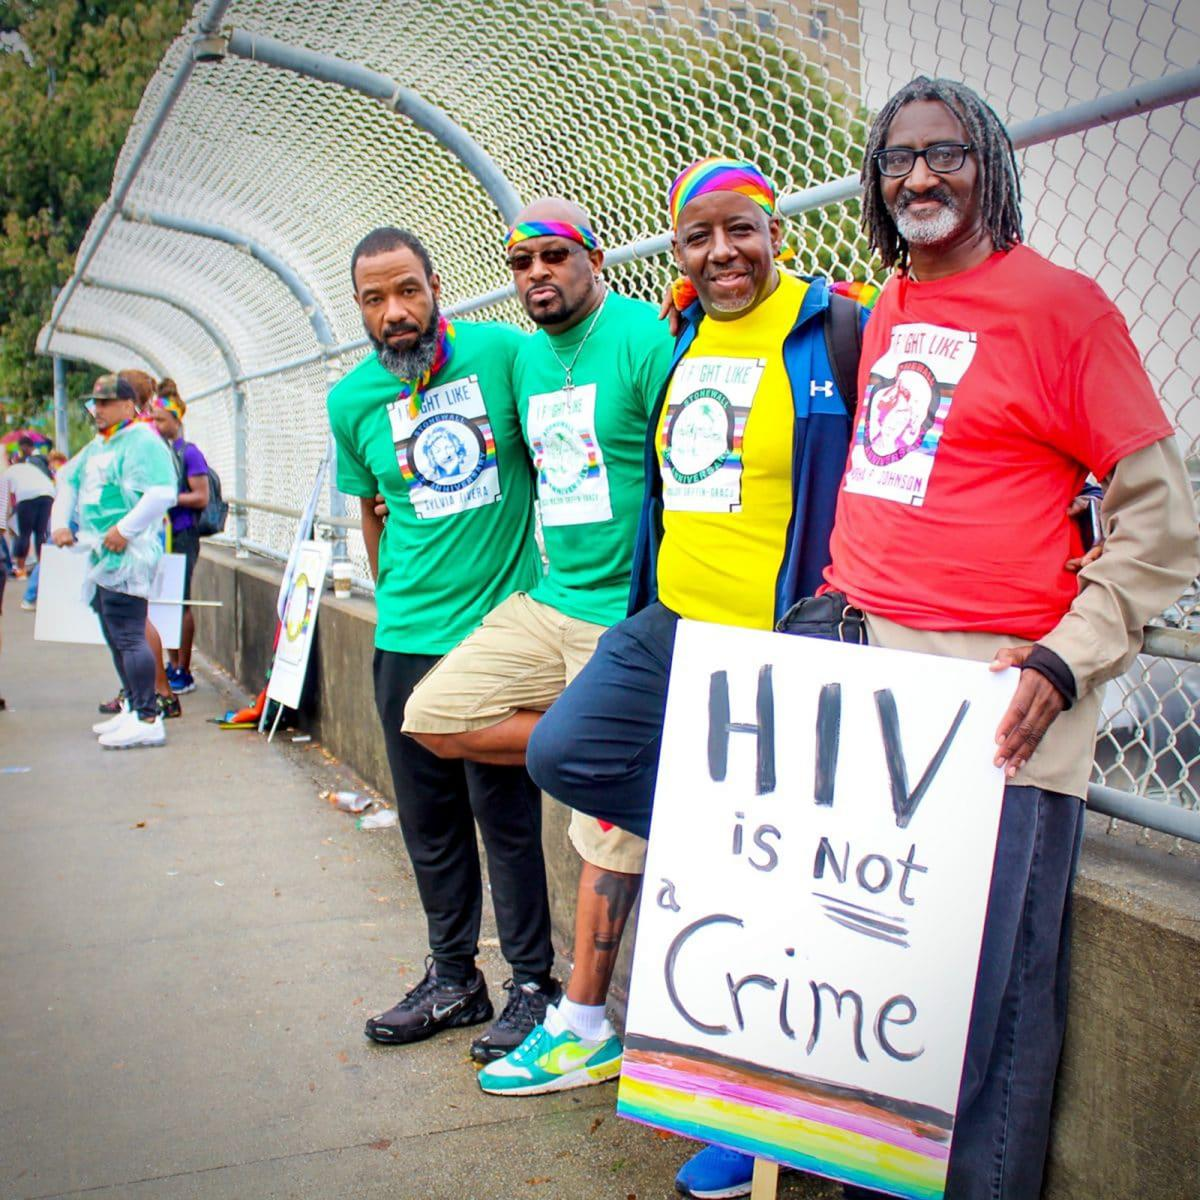 Ant Wilson, Thaddeus Works, DC Branch, and Renard Prather, all members of Thrive SS, at this year's pride parade in Atlanta.